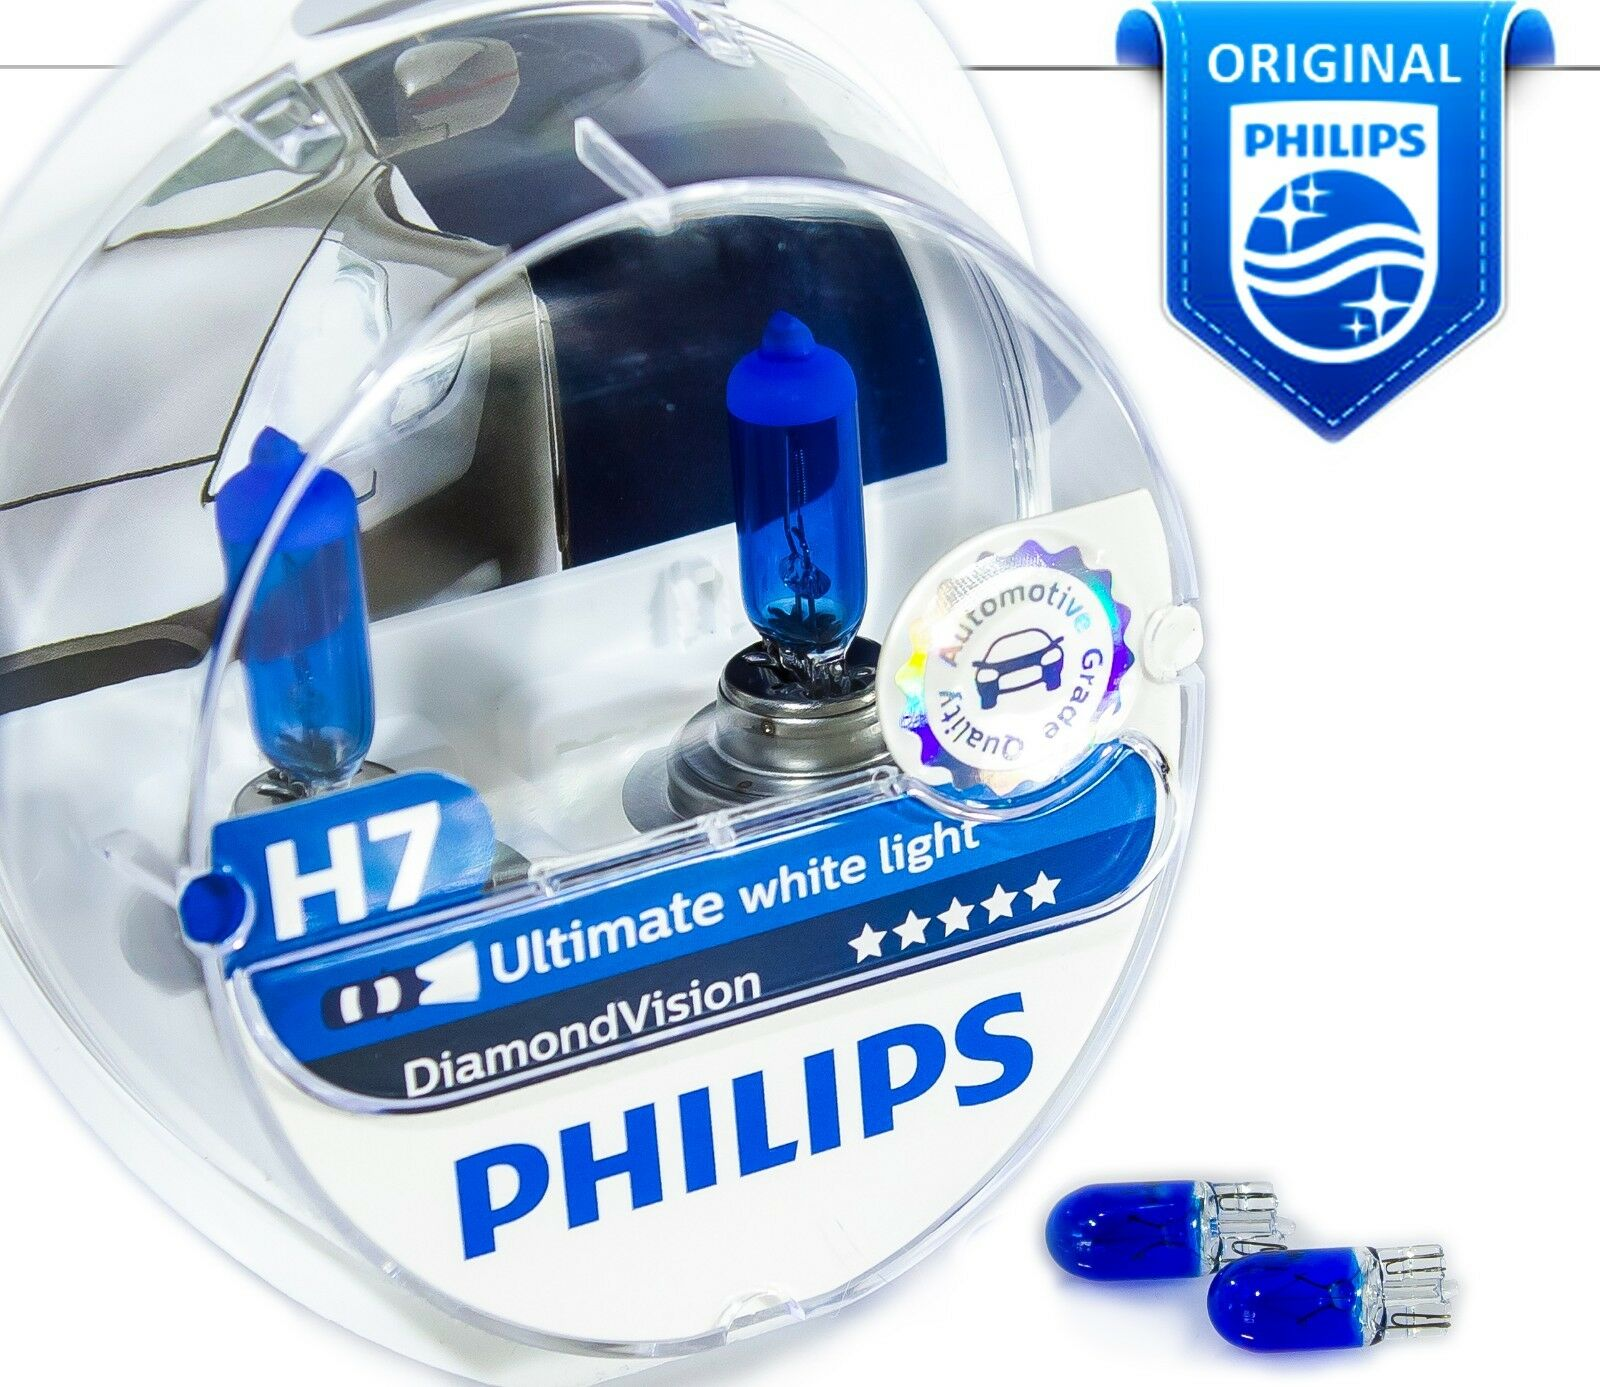 new h7 philips diamond vision 5000k car headlight bulbs 12v 55w px26d blue w5w eur 27 58. Black Bedroom Furniture Sets. Home Design Ideas